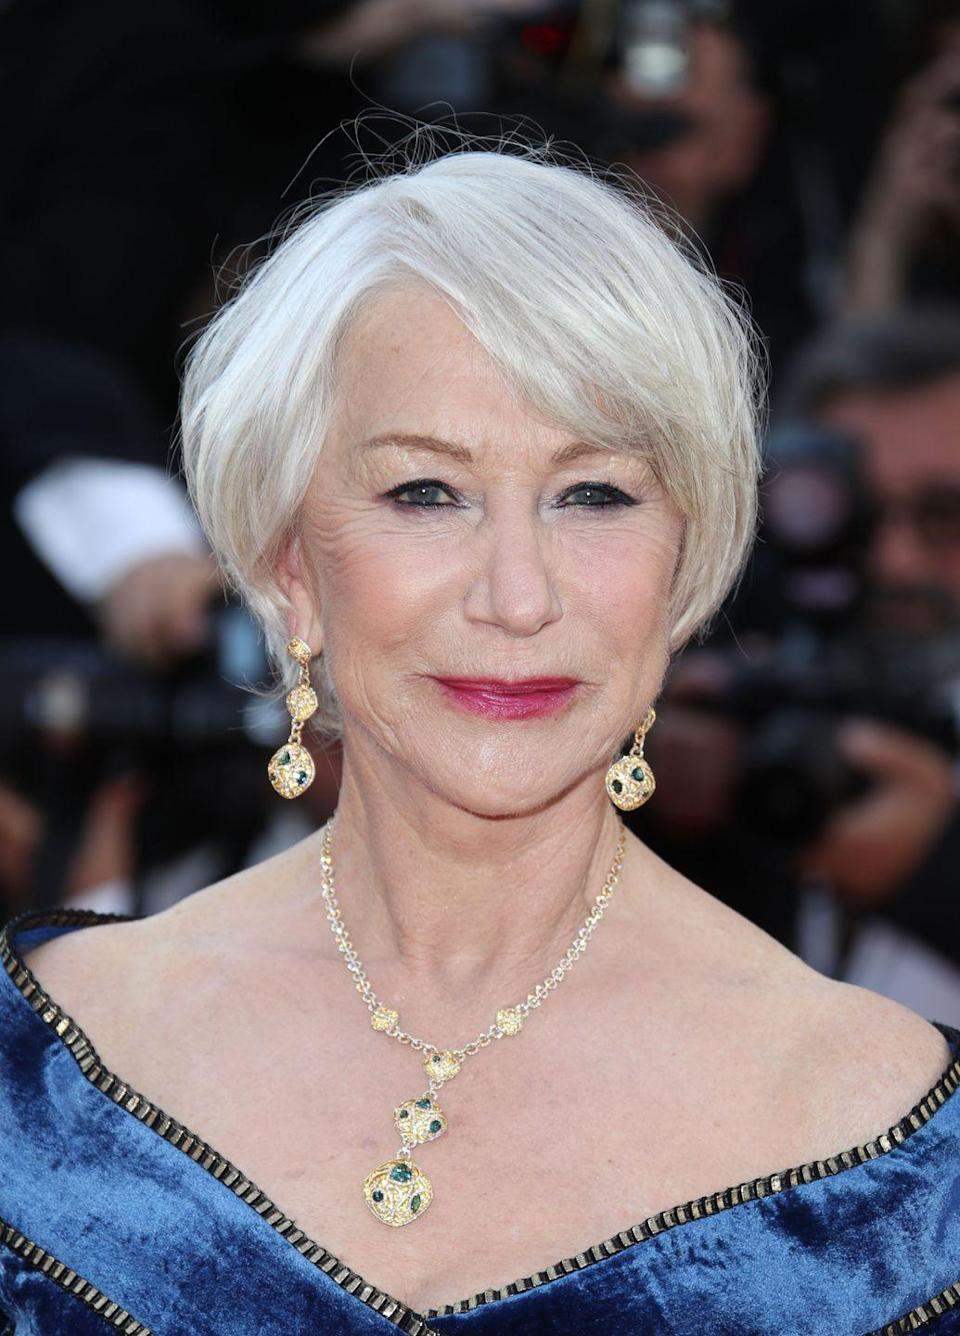 """<p>One of Pinterest's trending terms is """"going gray."""" If you're thinking about letting nature run its course like <strong>Helen Mirren</strong>, now's the time — women are actually <em>dyeing </em>their hair gray. Like with platinum blonde hair, be sure to eliminate any brass or yellow tones by using a purple shampoo like <strong><a href=""""https://www.amazon.com/Clairol-Professional-Shimmer-Lights-Shampoo/dp/B000TBVGBM?tag=syn-yahoo-20&ascsubtag=%5Bartid%7C10055.g.3027%5Bsrc%7Cyahoo-us"""" rel=""""nofollow noopener"""" target=""""_blank"""" data-ylk=""""slk:Clairol Shimmer Lights"""" class=""""link rapid-noclick-resp"""">Clairol Shimmer Lights</a></strong> a few times a week. </p>"""